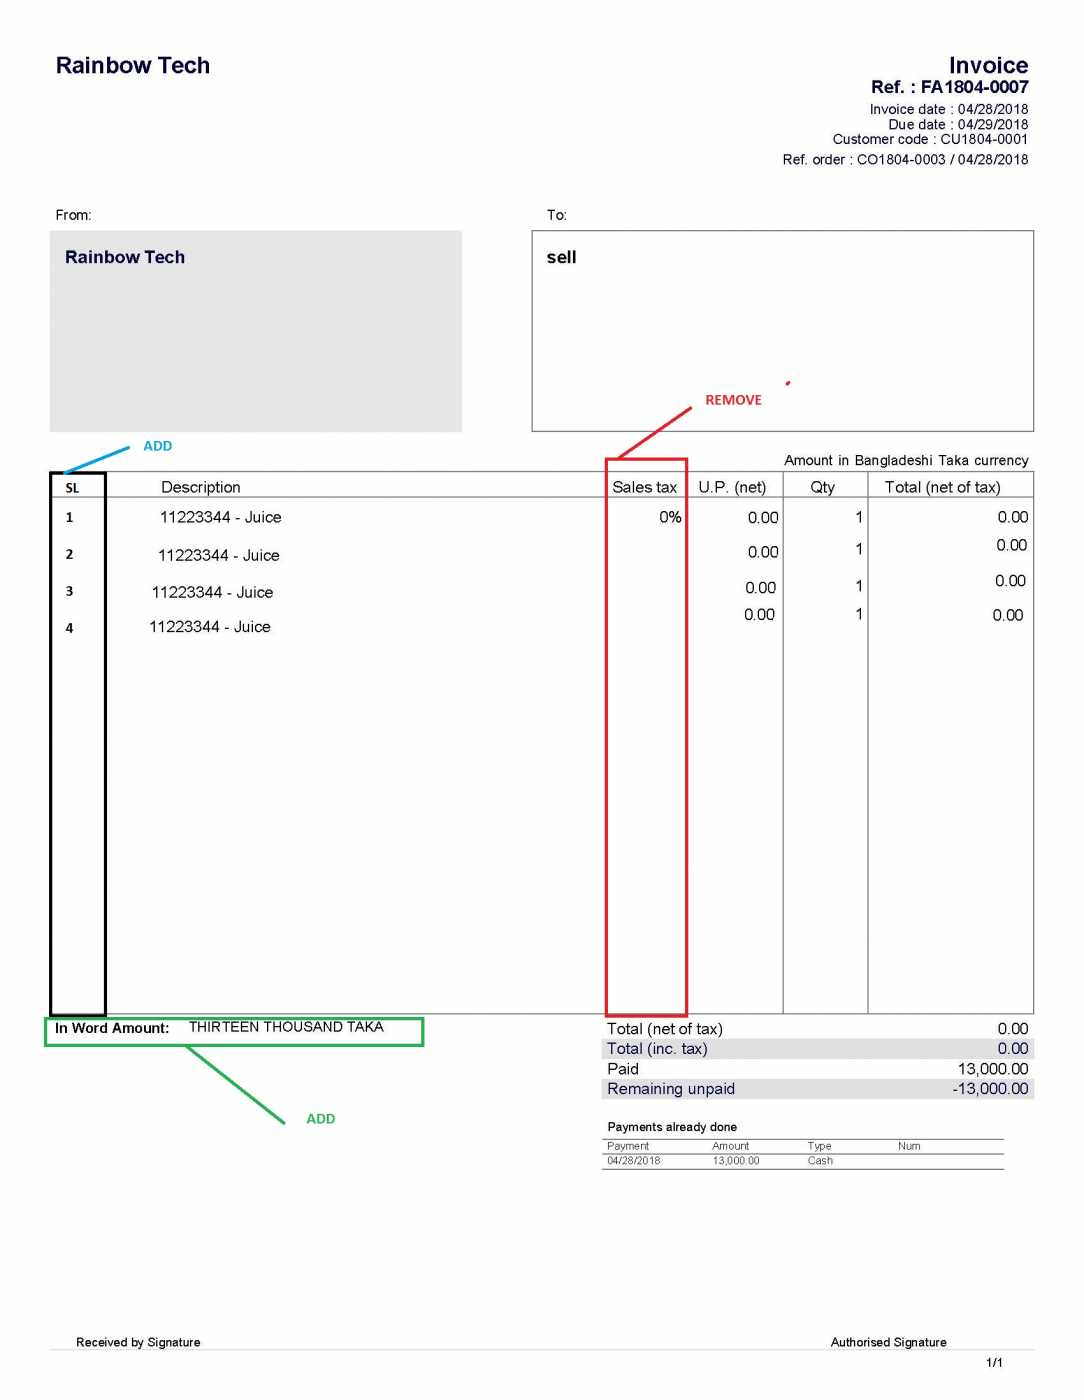 invoice total amount in word - using my dolibarr